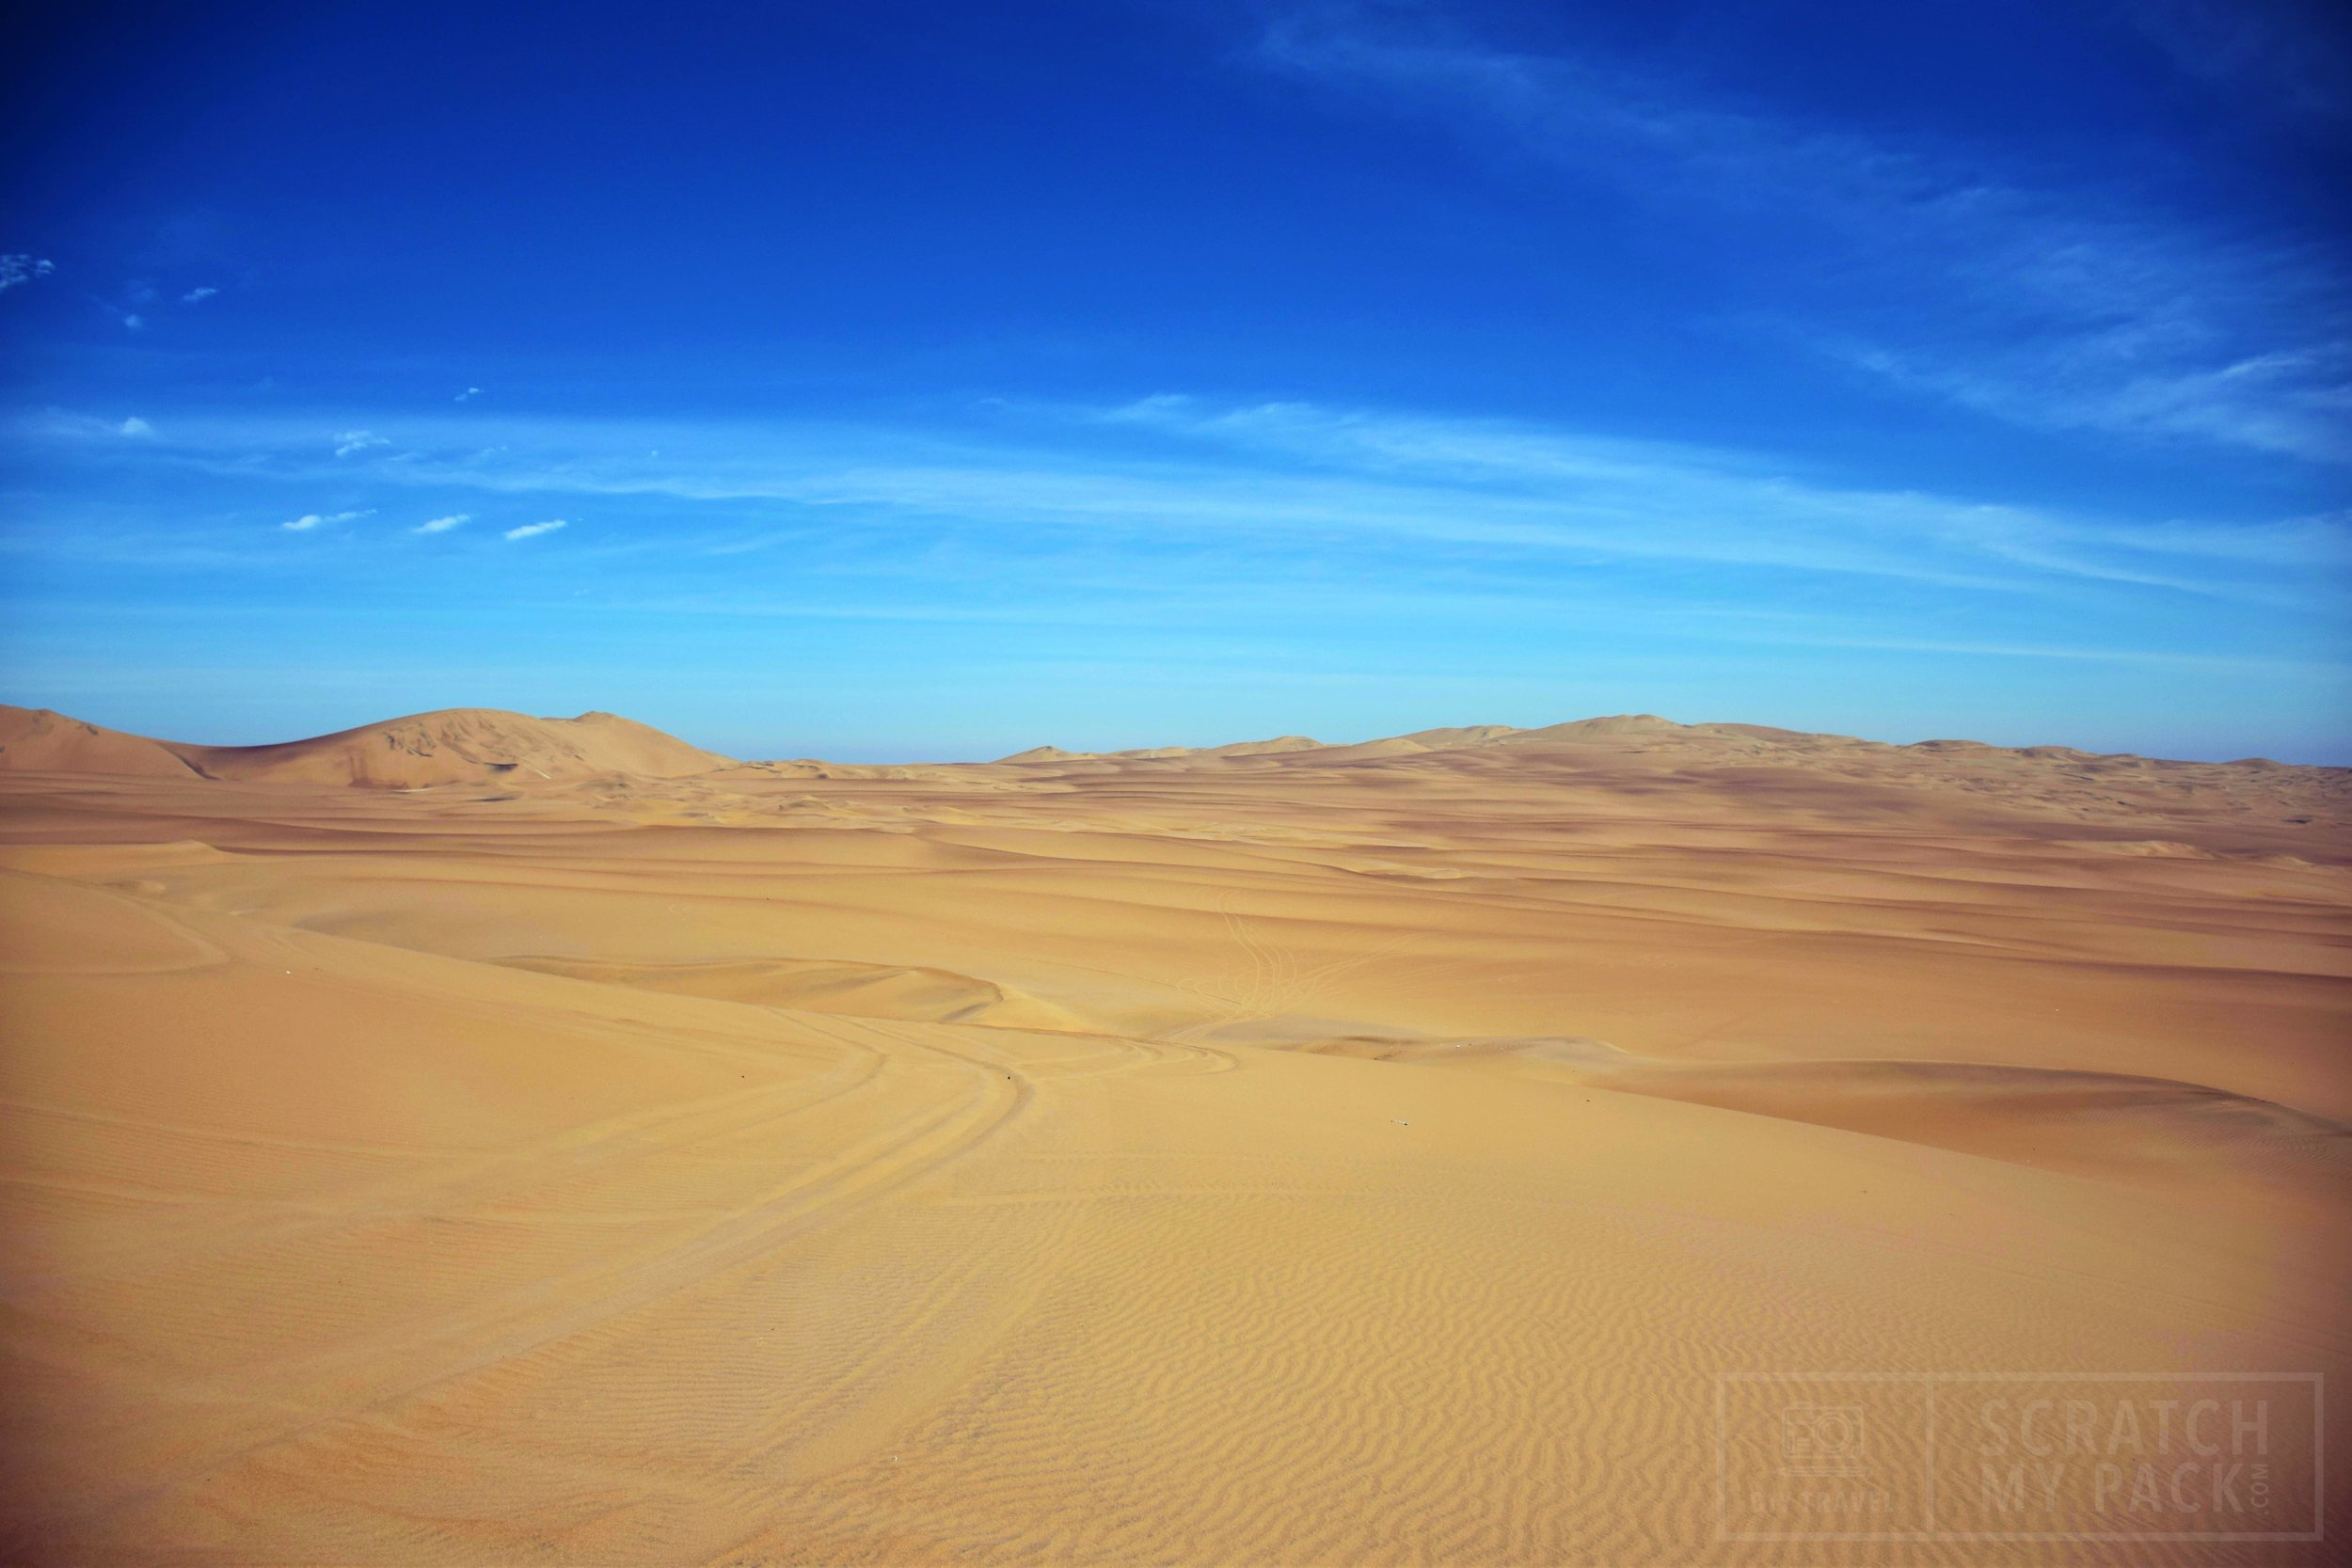 The Dunes  -  Cost $20 if you don't book at Bananas Hostel -  Spend a few hours taking a Dune Buggy ride and either sliding down on a sled or sandboarding down 5-6 massive dunes. Make sure to take water, sunblock, tennis shoes, and a a plastic bag for your camera.